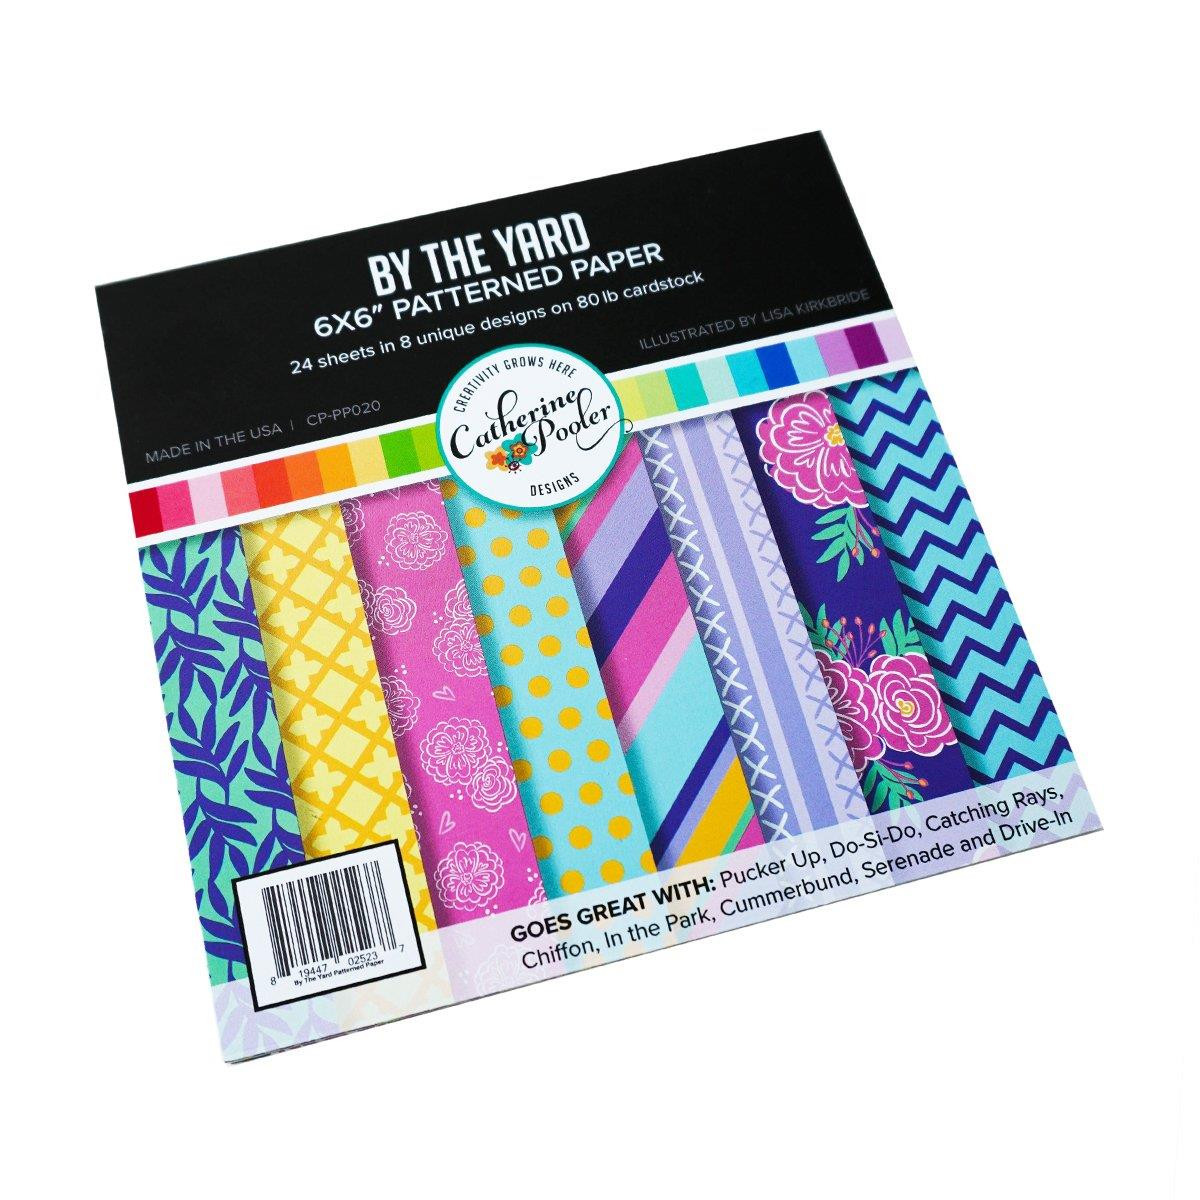 By the Yard, Catherine Pooler Patterned Paper -